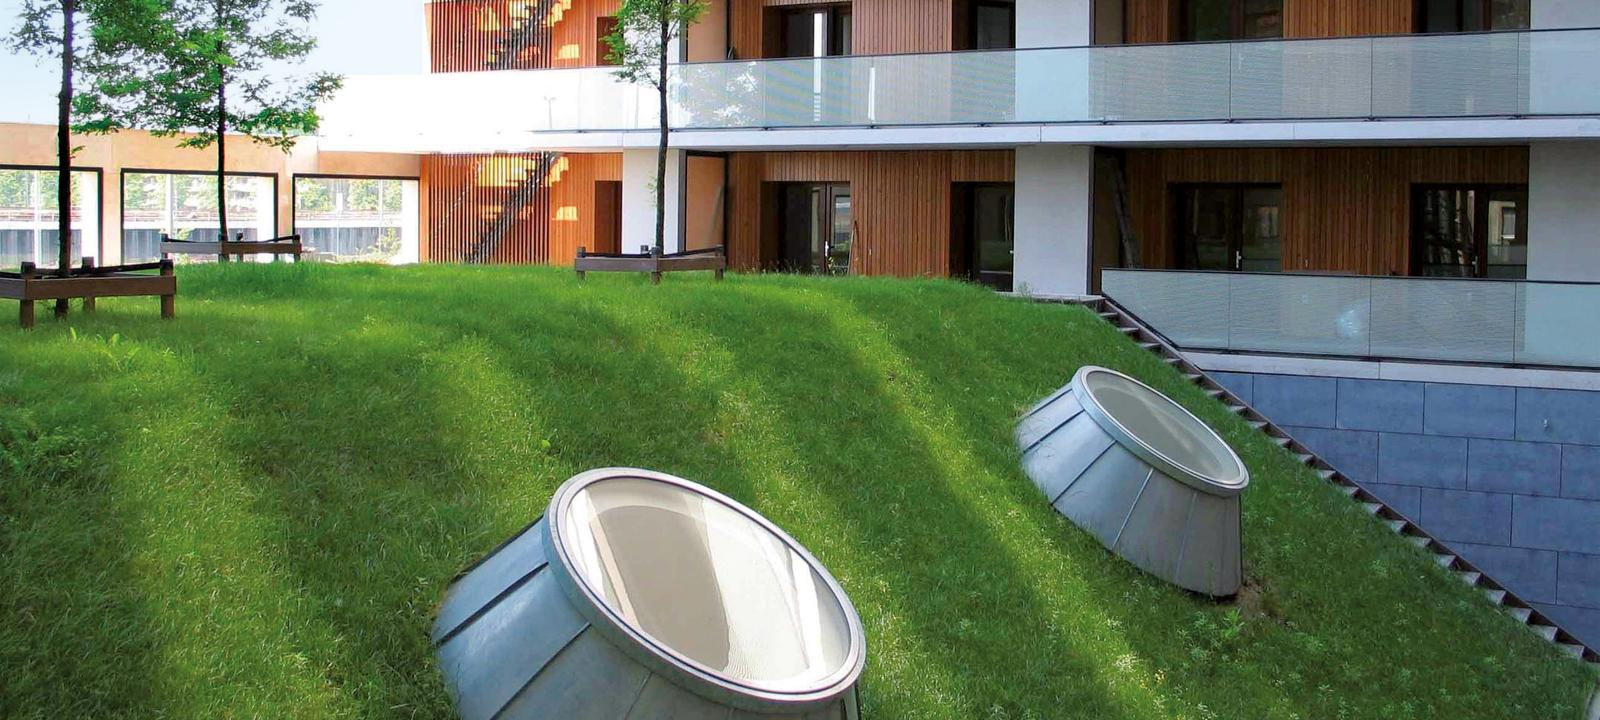 Green roof with pitched areas and skylights and flat areas with small trees